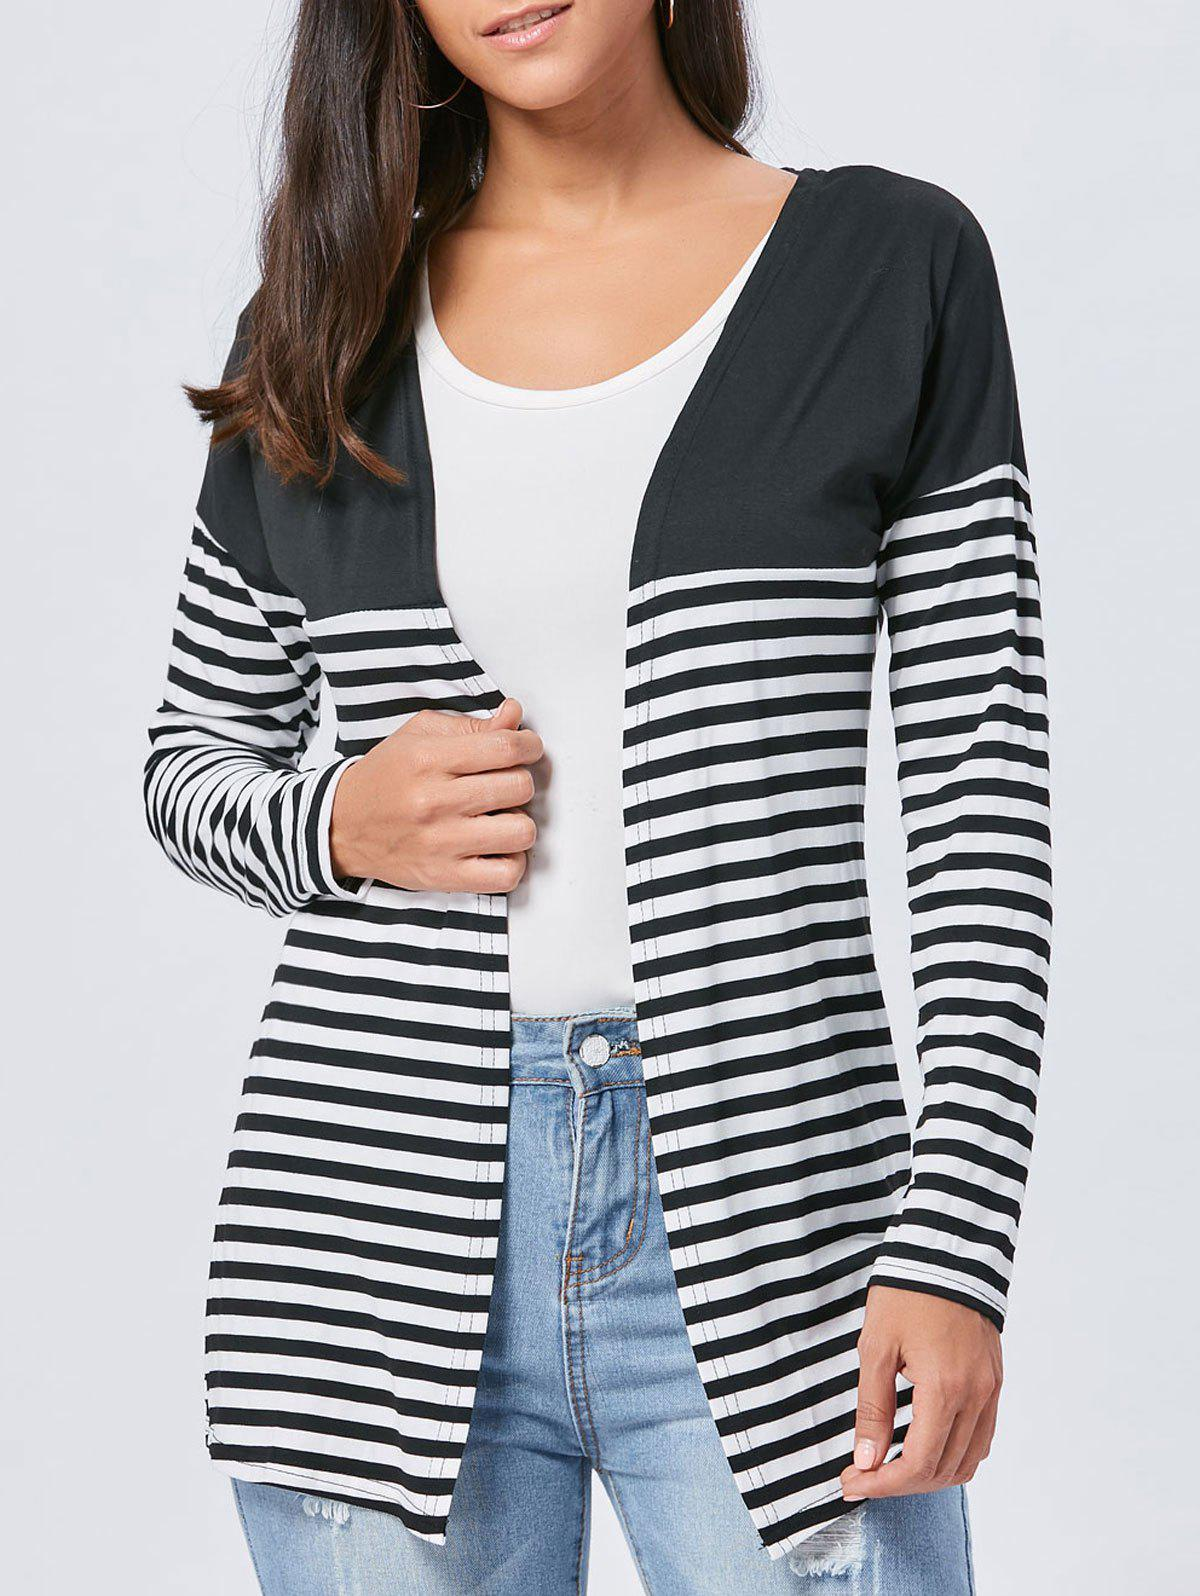 Two Tone Striped Panel Long Cardigan - BLACK S